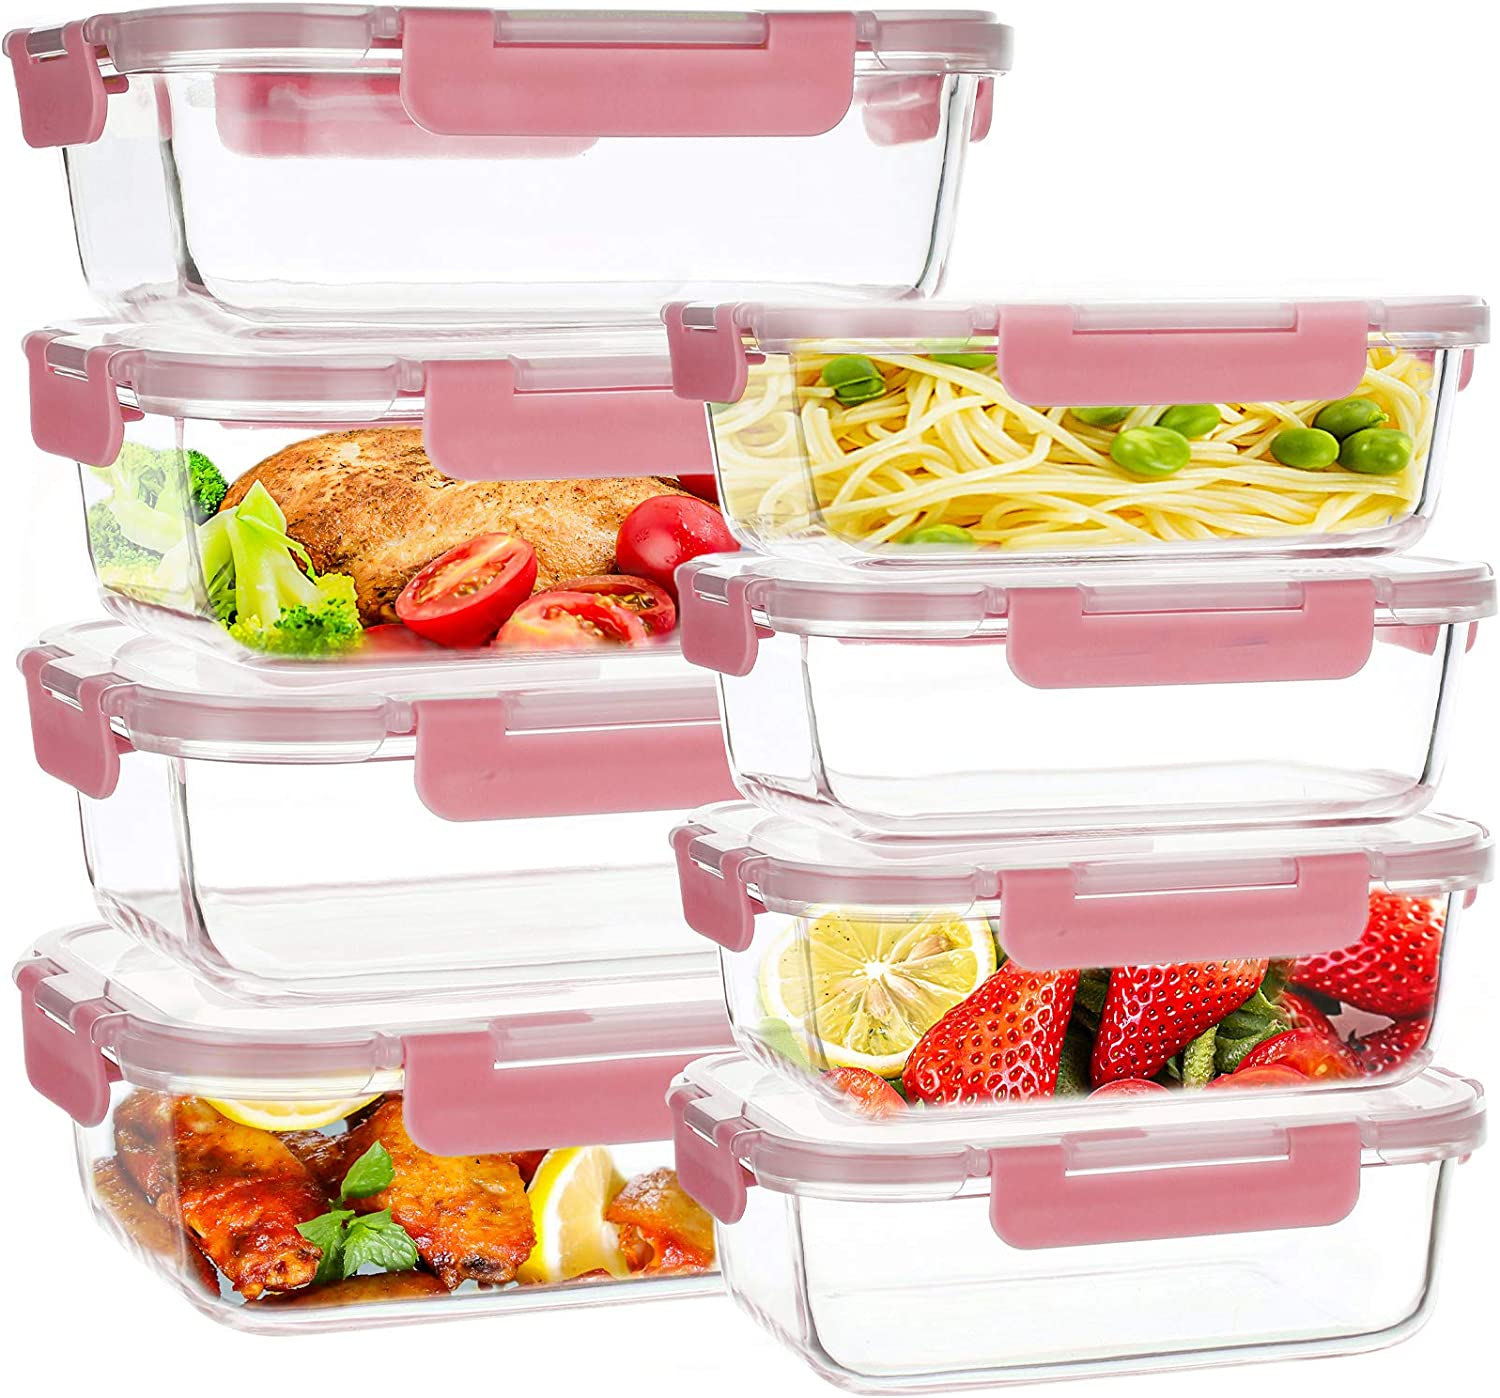 UMIZILI 8 Pack Glass Food Storage Containers with Lids, 2 Size [34oz+12oz] Airtight Meal Prep Containers with Smart Locking Lids, Pink Lunch Bento Boxes for Leftover, 100% Leak-Proof